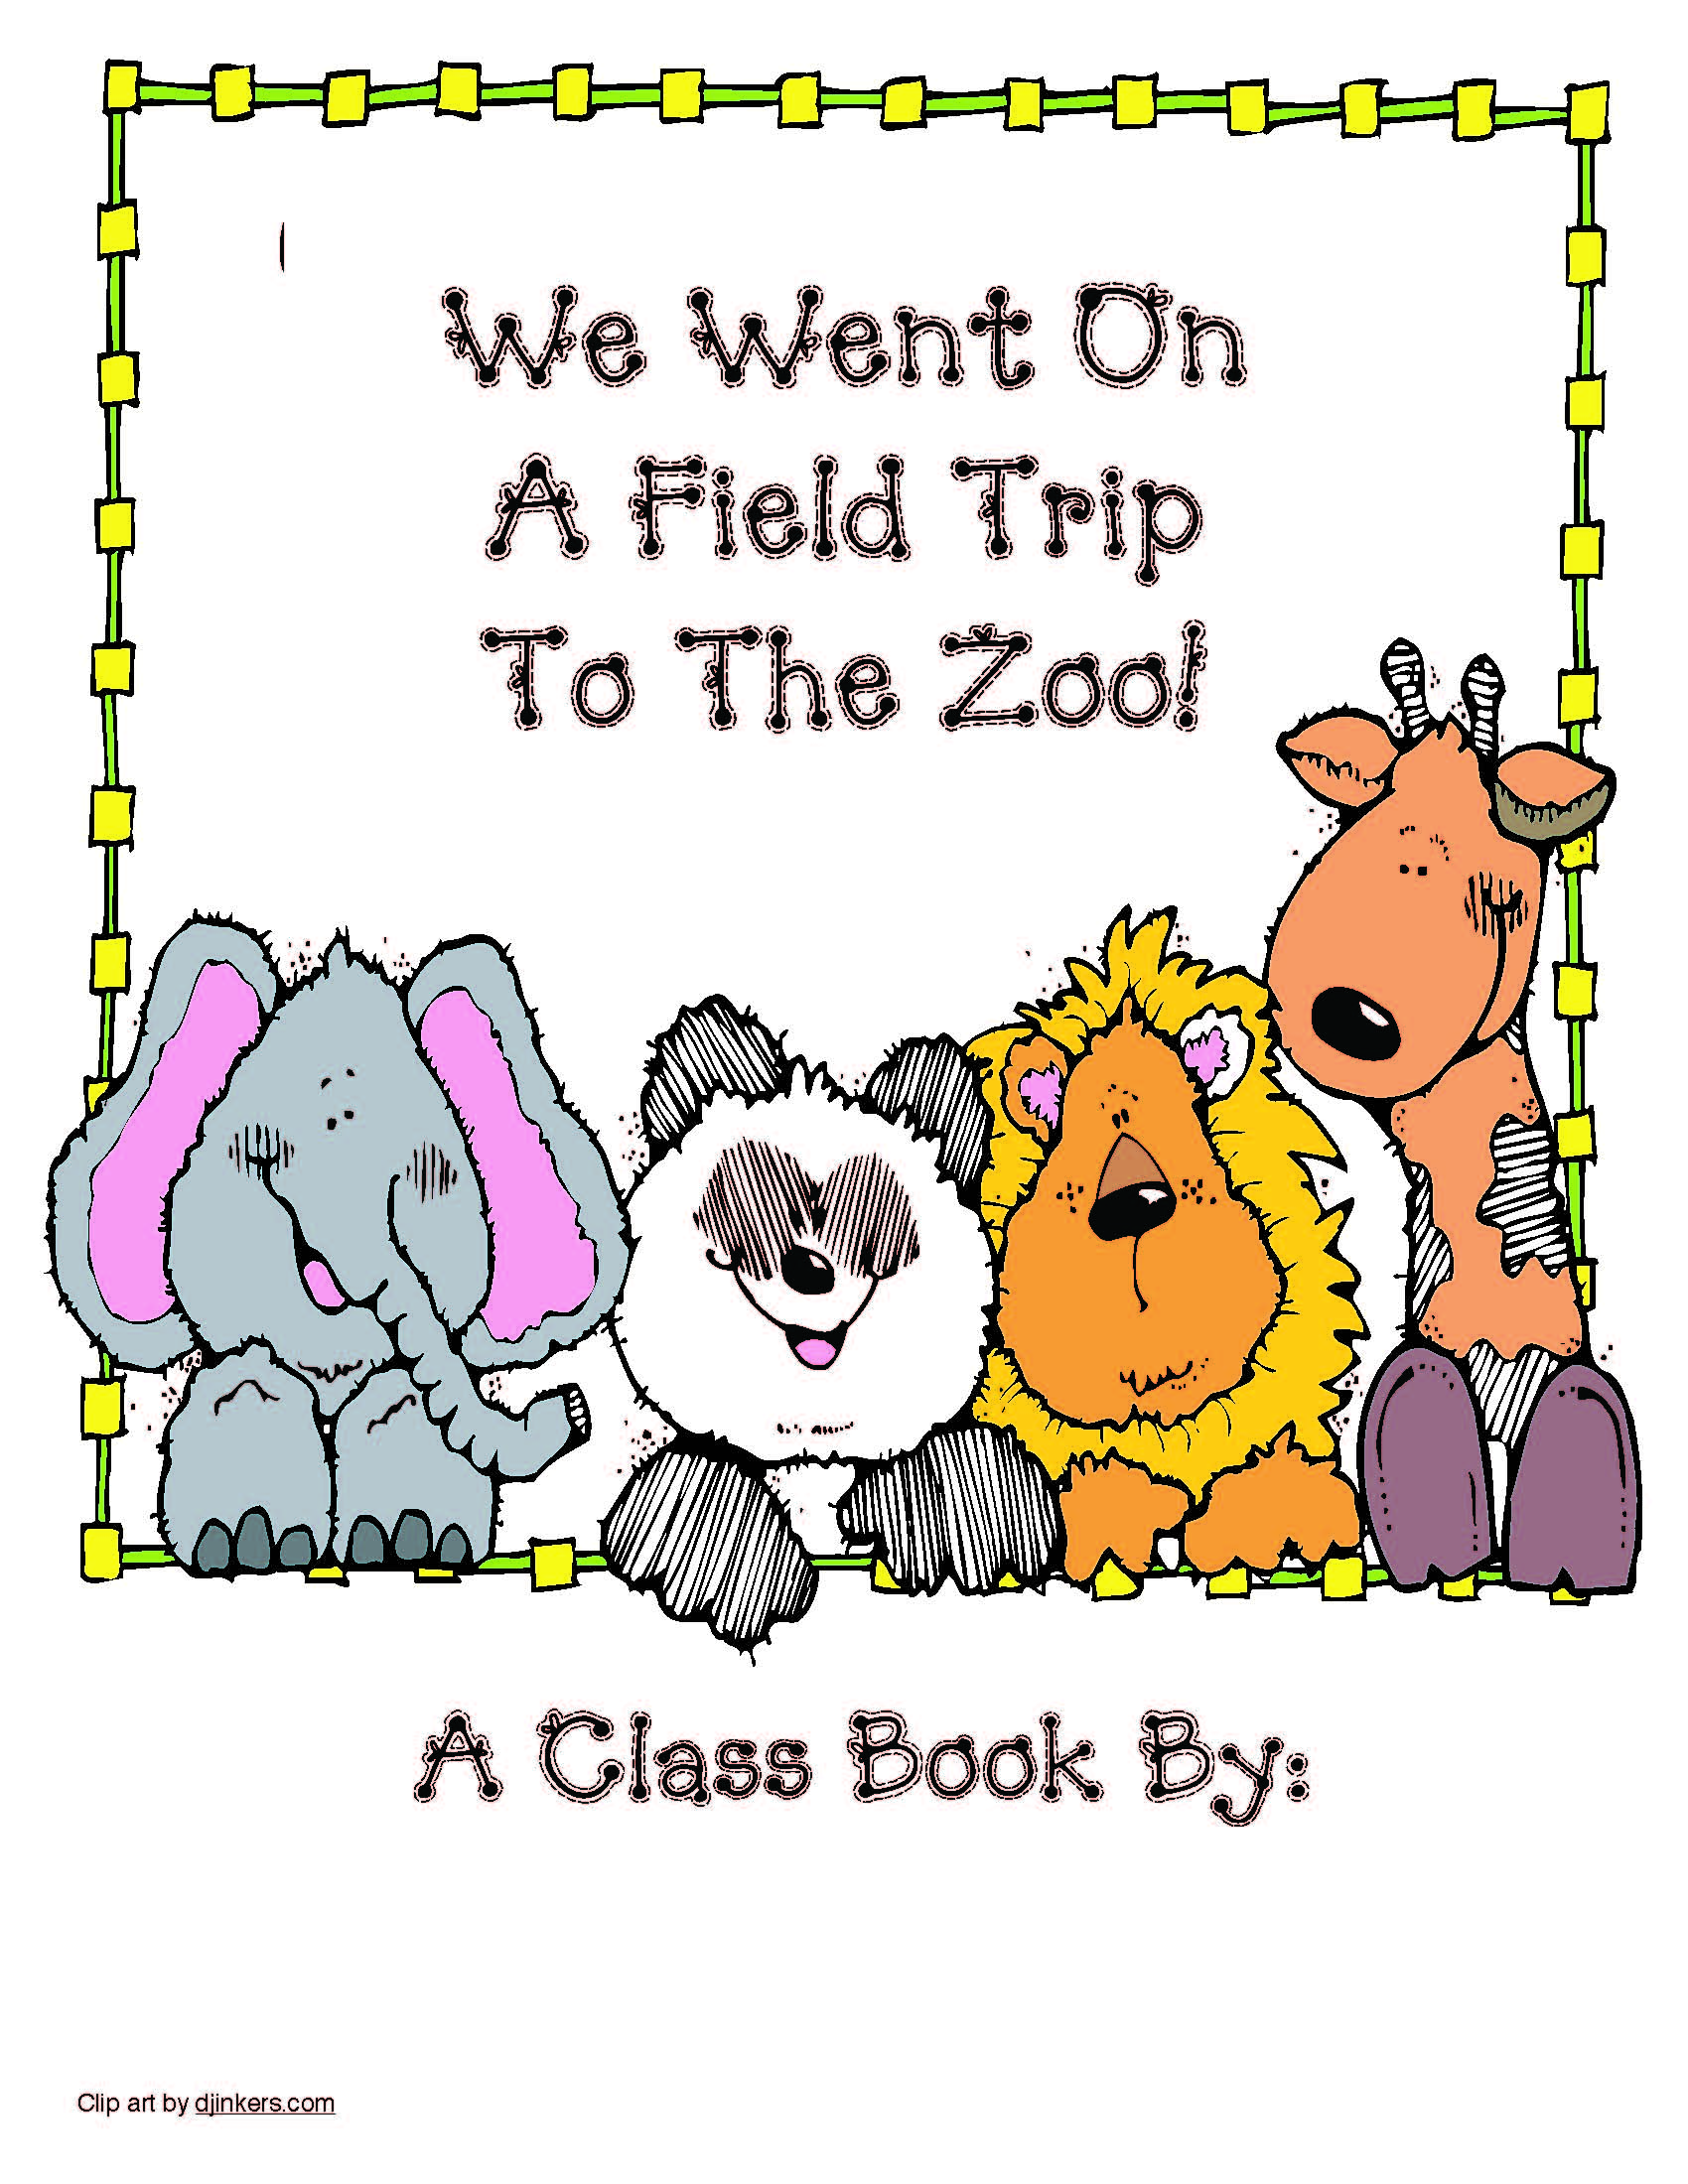 90 zoo books bibliography, zoo books, zoo activities, zoo lessons, zoo field trip activities, field trip note, zoo scavenger hunt, zoo class book, zoo writing prompts, list of virtual zoos, going on a virtual zoo field trip, alphabetical list of zoo animals, common core zoo